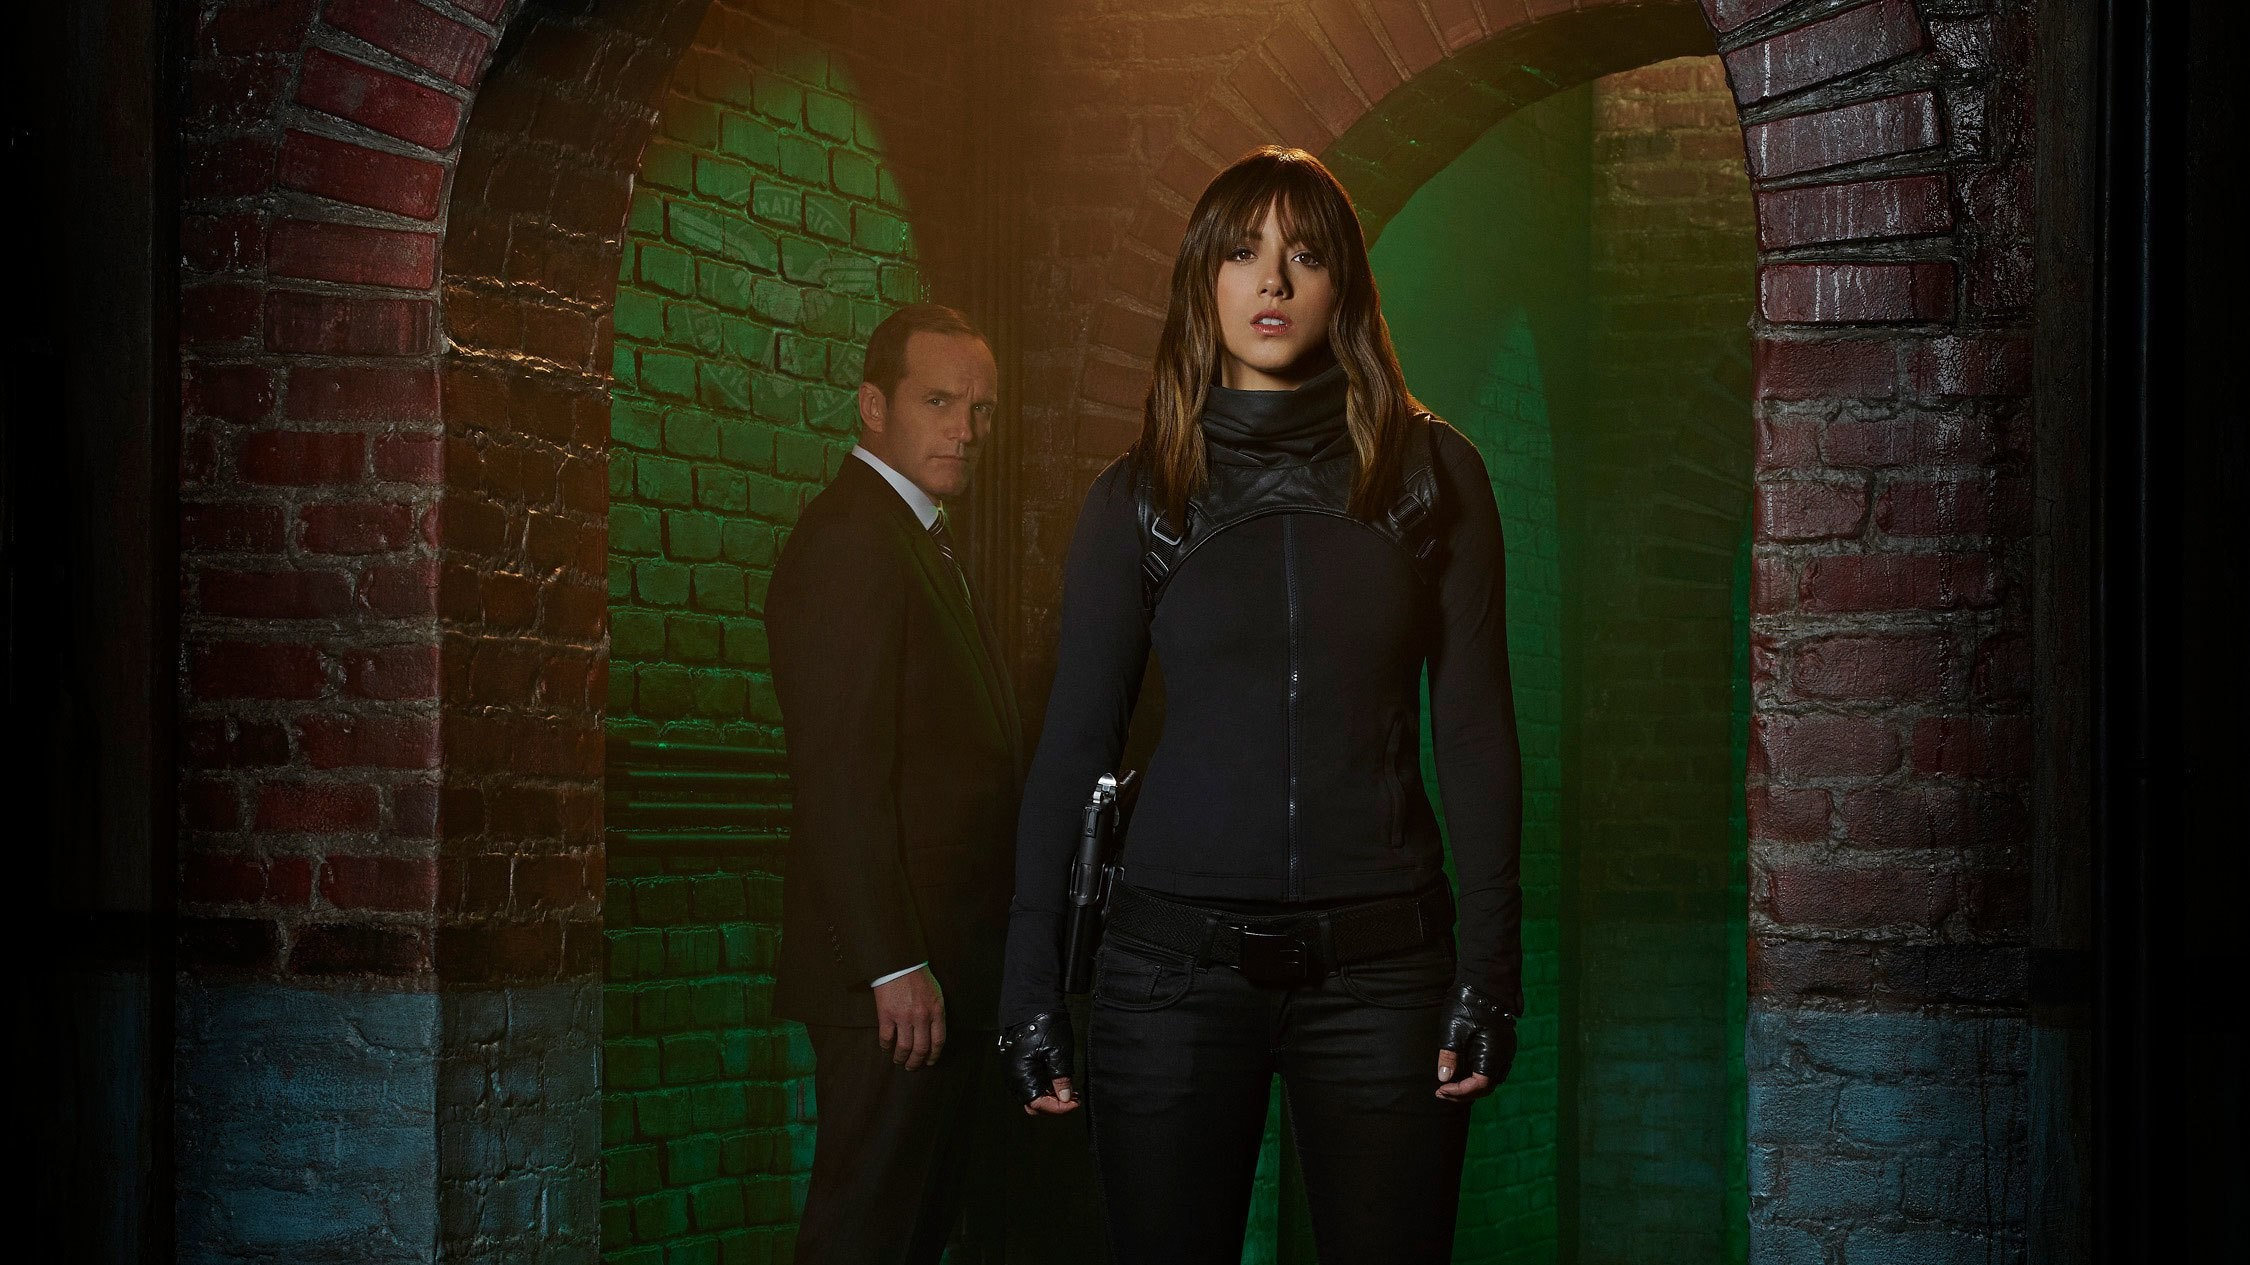 2250x1265 HD Wallpaper | Background ID:676142.  TV Show Marvel's Agents of  S.H.I.E.L.D.